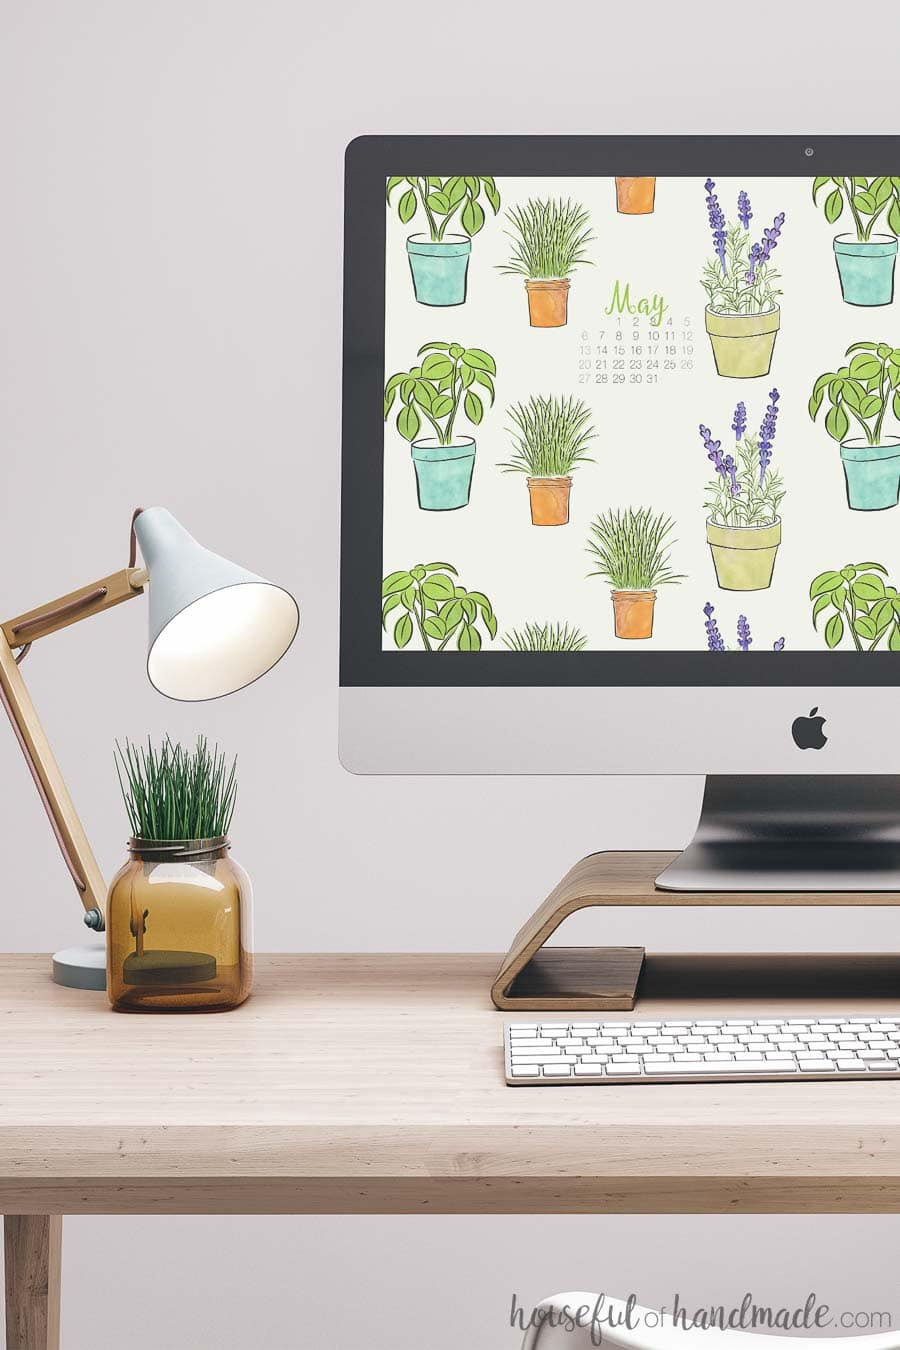 If you love gardening, you are going to love these free digital backgrounds for May. This fun hand-drawn herb pattern is perfect for decorating your smartphone and computer screen for spring. Download with or without a calendar today! Housefulofhandmade.com